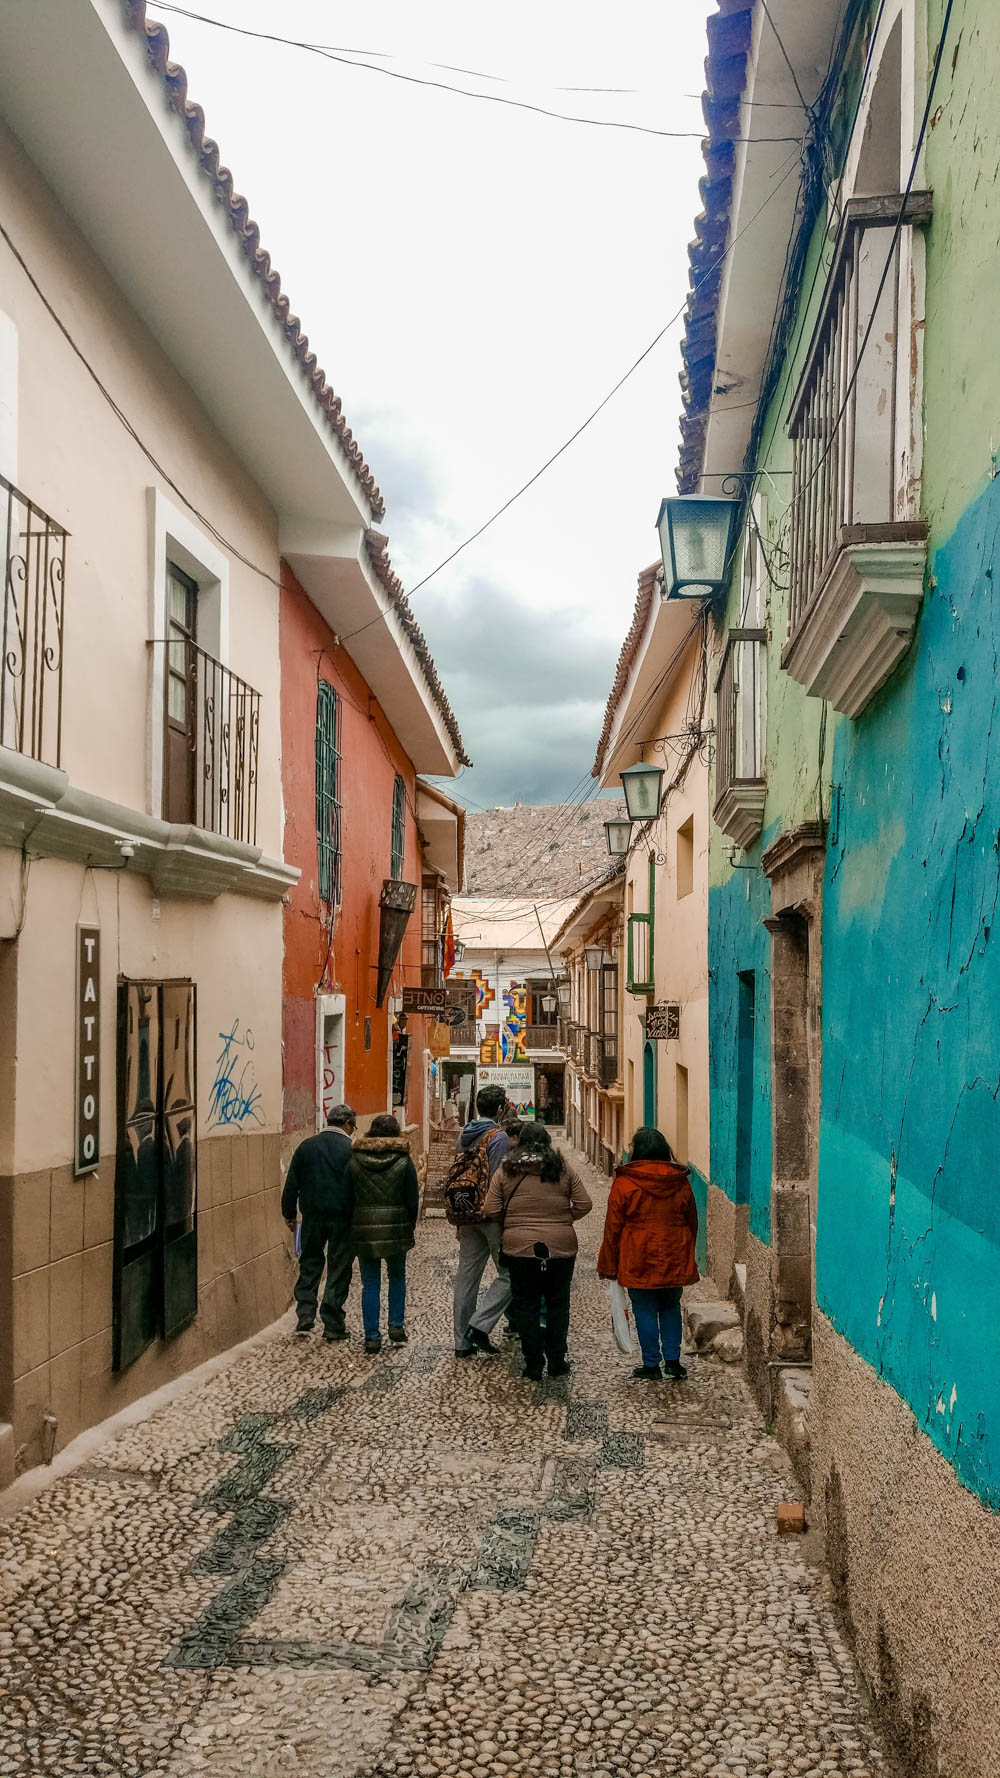 Calle Jaen, the historical street of La Paz - Bolivia 2-week itinerary and travel guide | Aliz's Wonderland